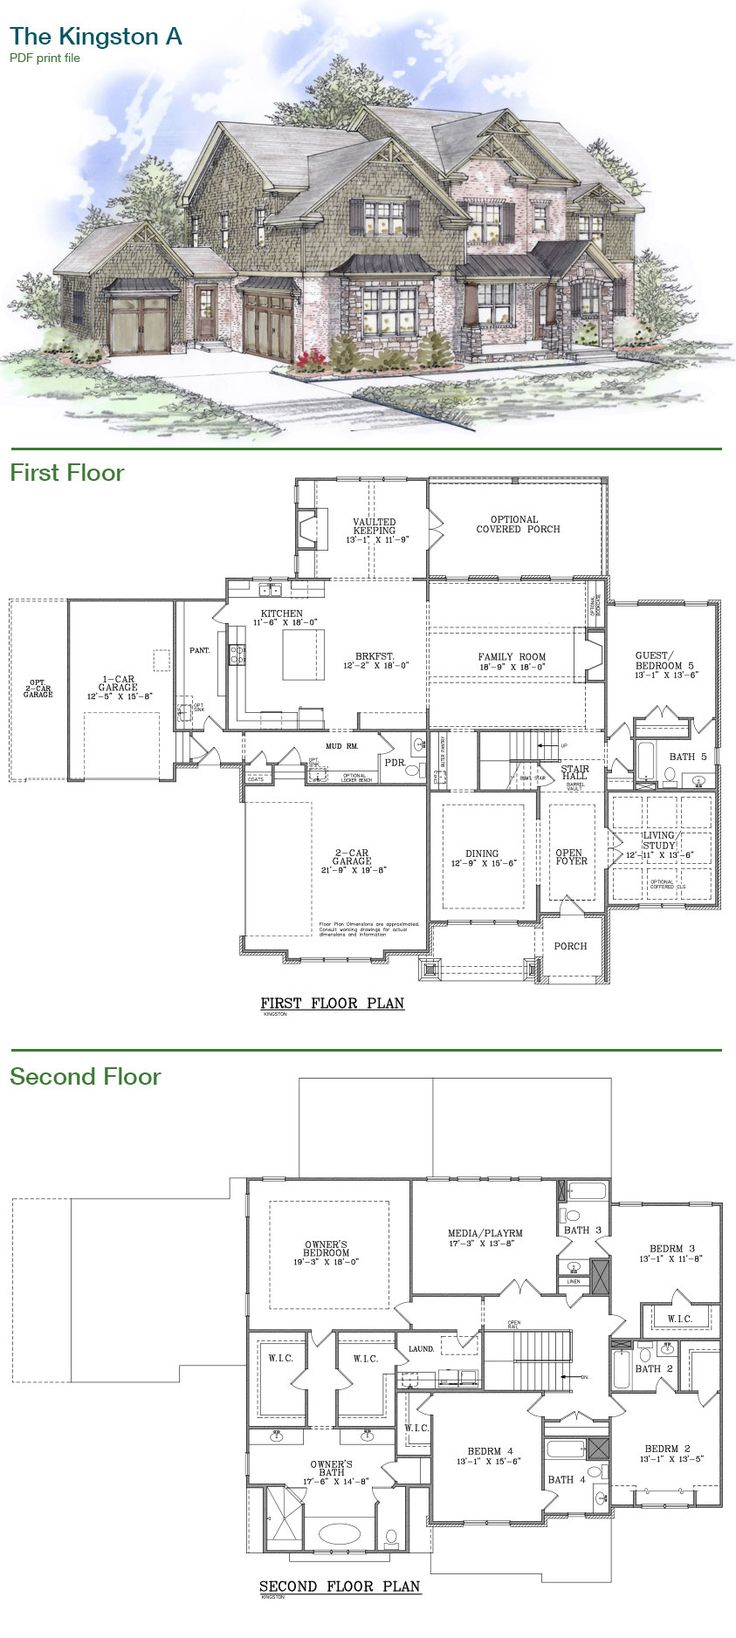 Home construction project plan